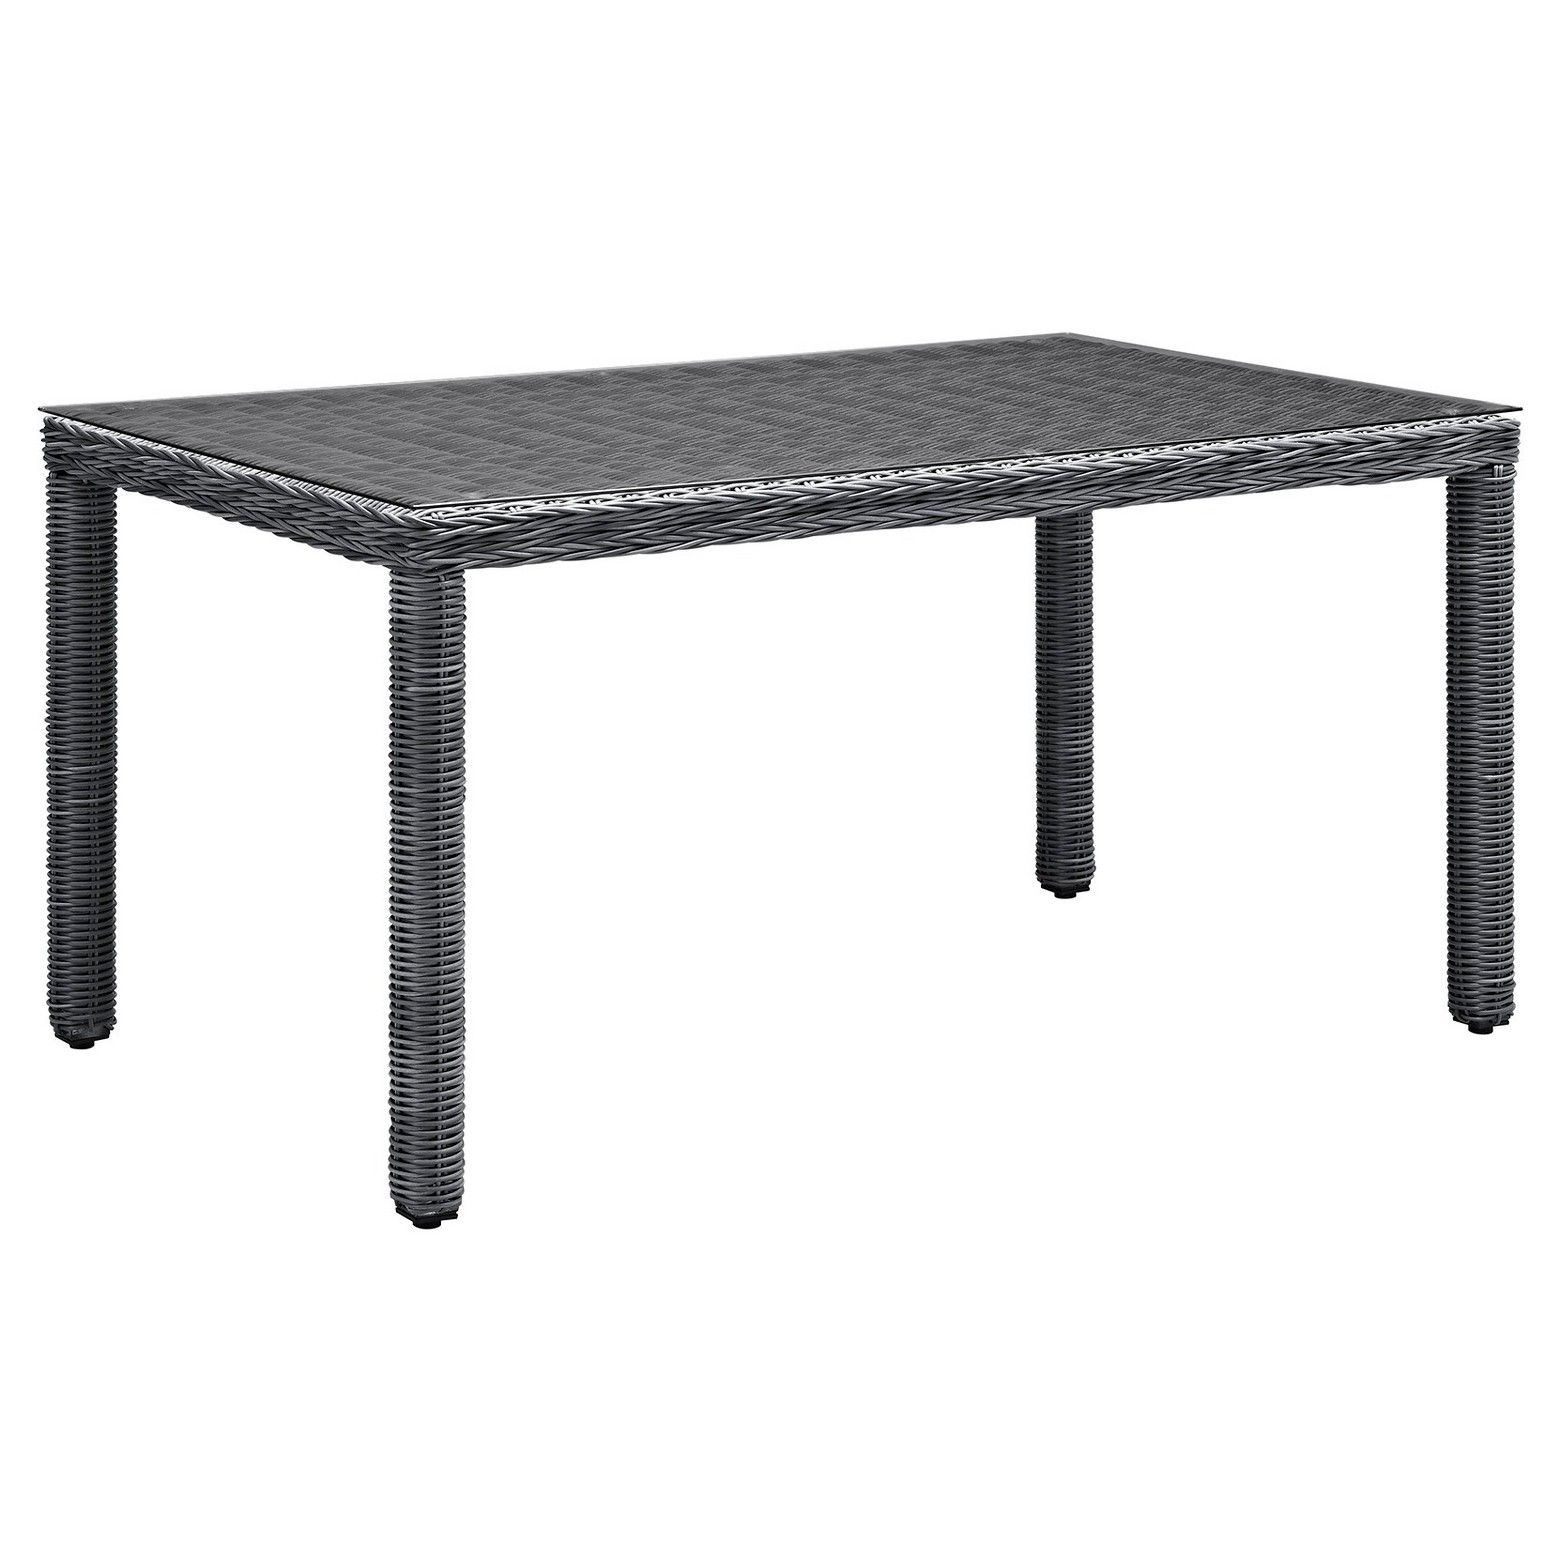 Modway Summon Rectangular Outdoor Patio Dining Table